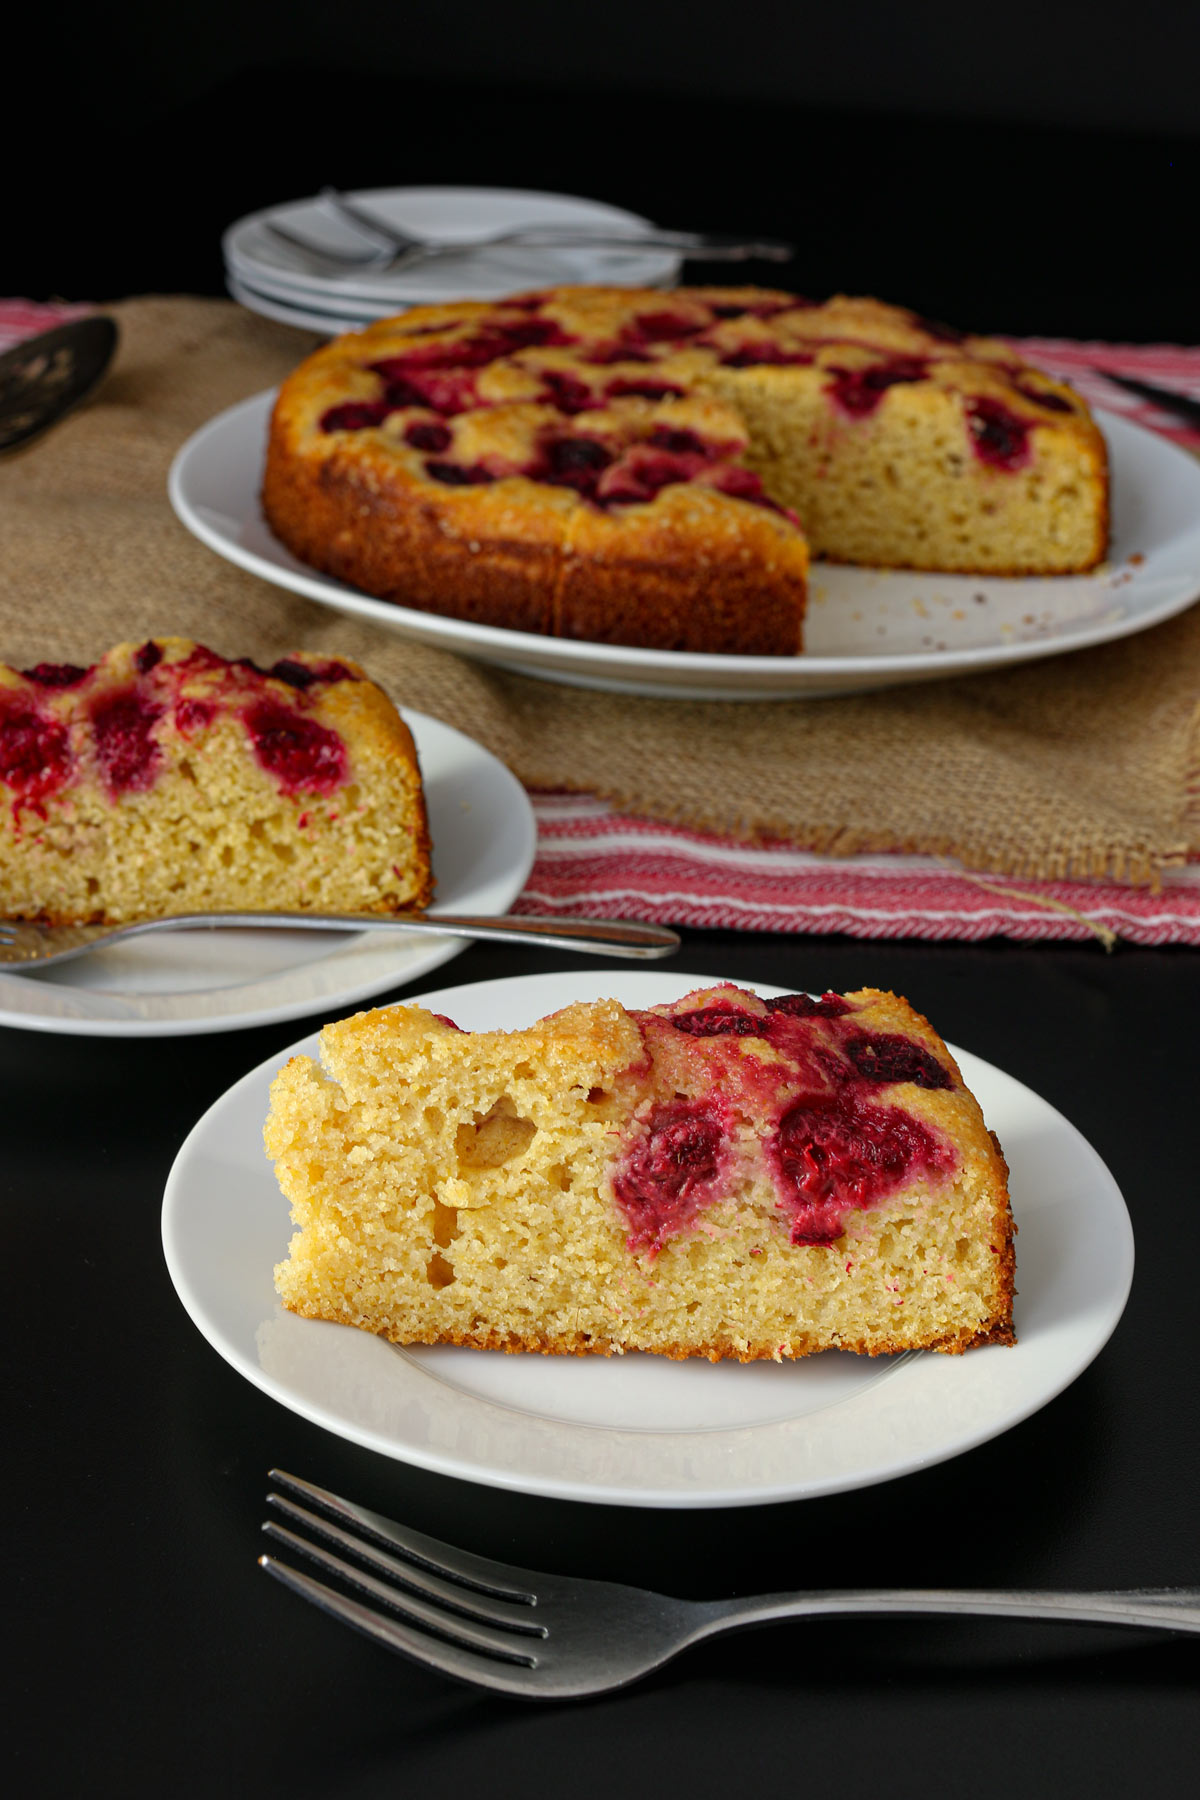 wedges of raspberry breakfast cake dished up on plates with forks next to a platter with the partial cake. A stack of plates and forks are in the background.